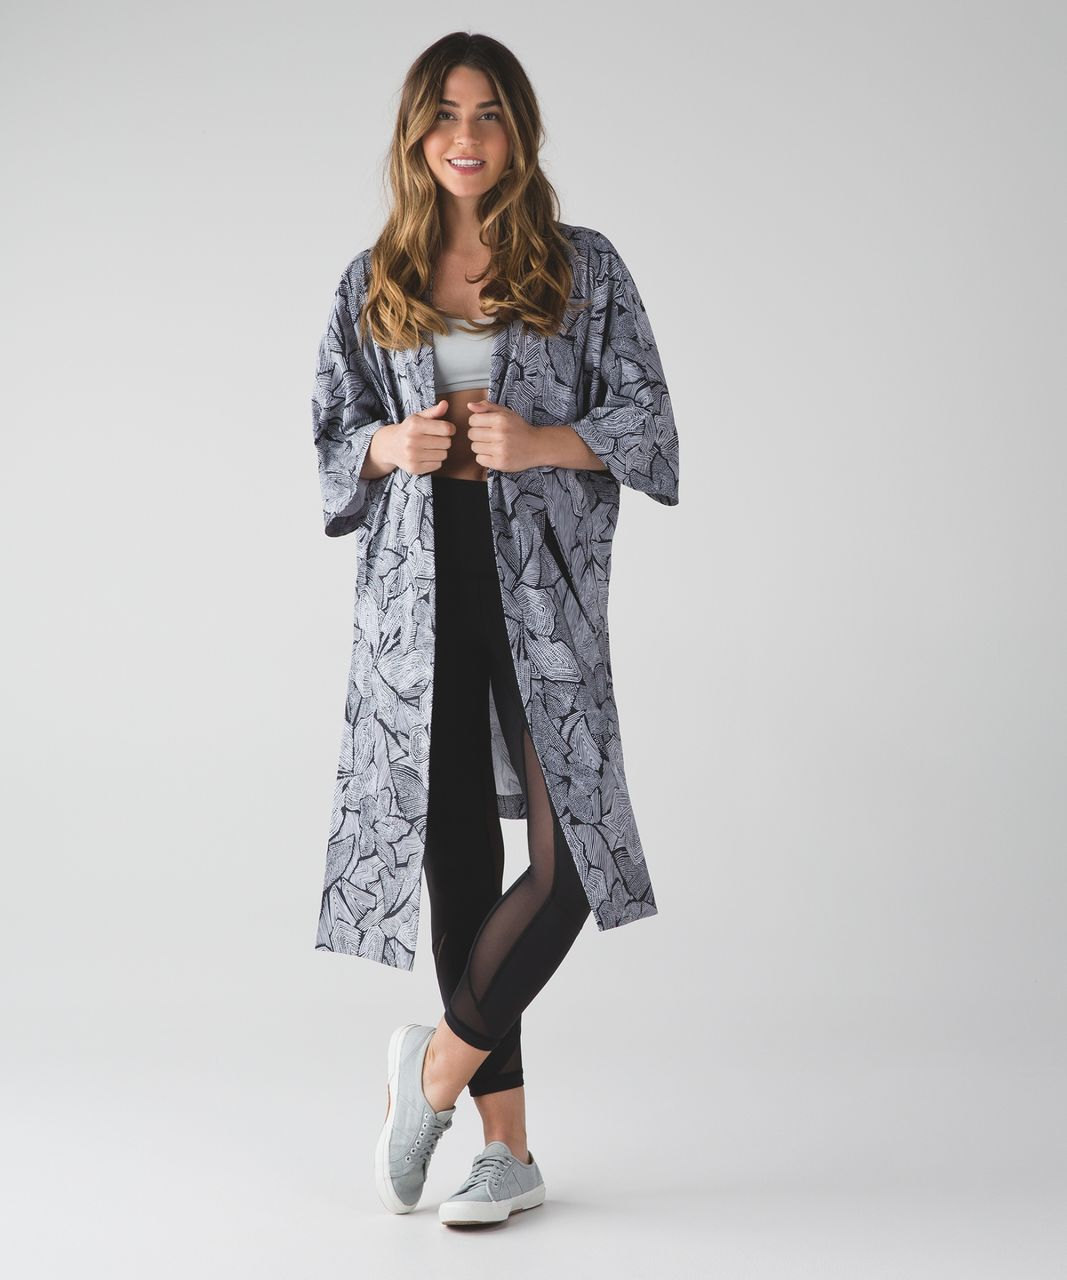 Lululemon Yoga Haven Kimono - Dottie Tribe White Black